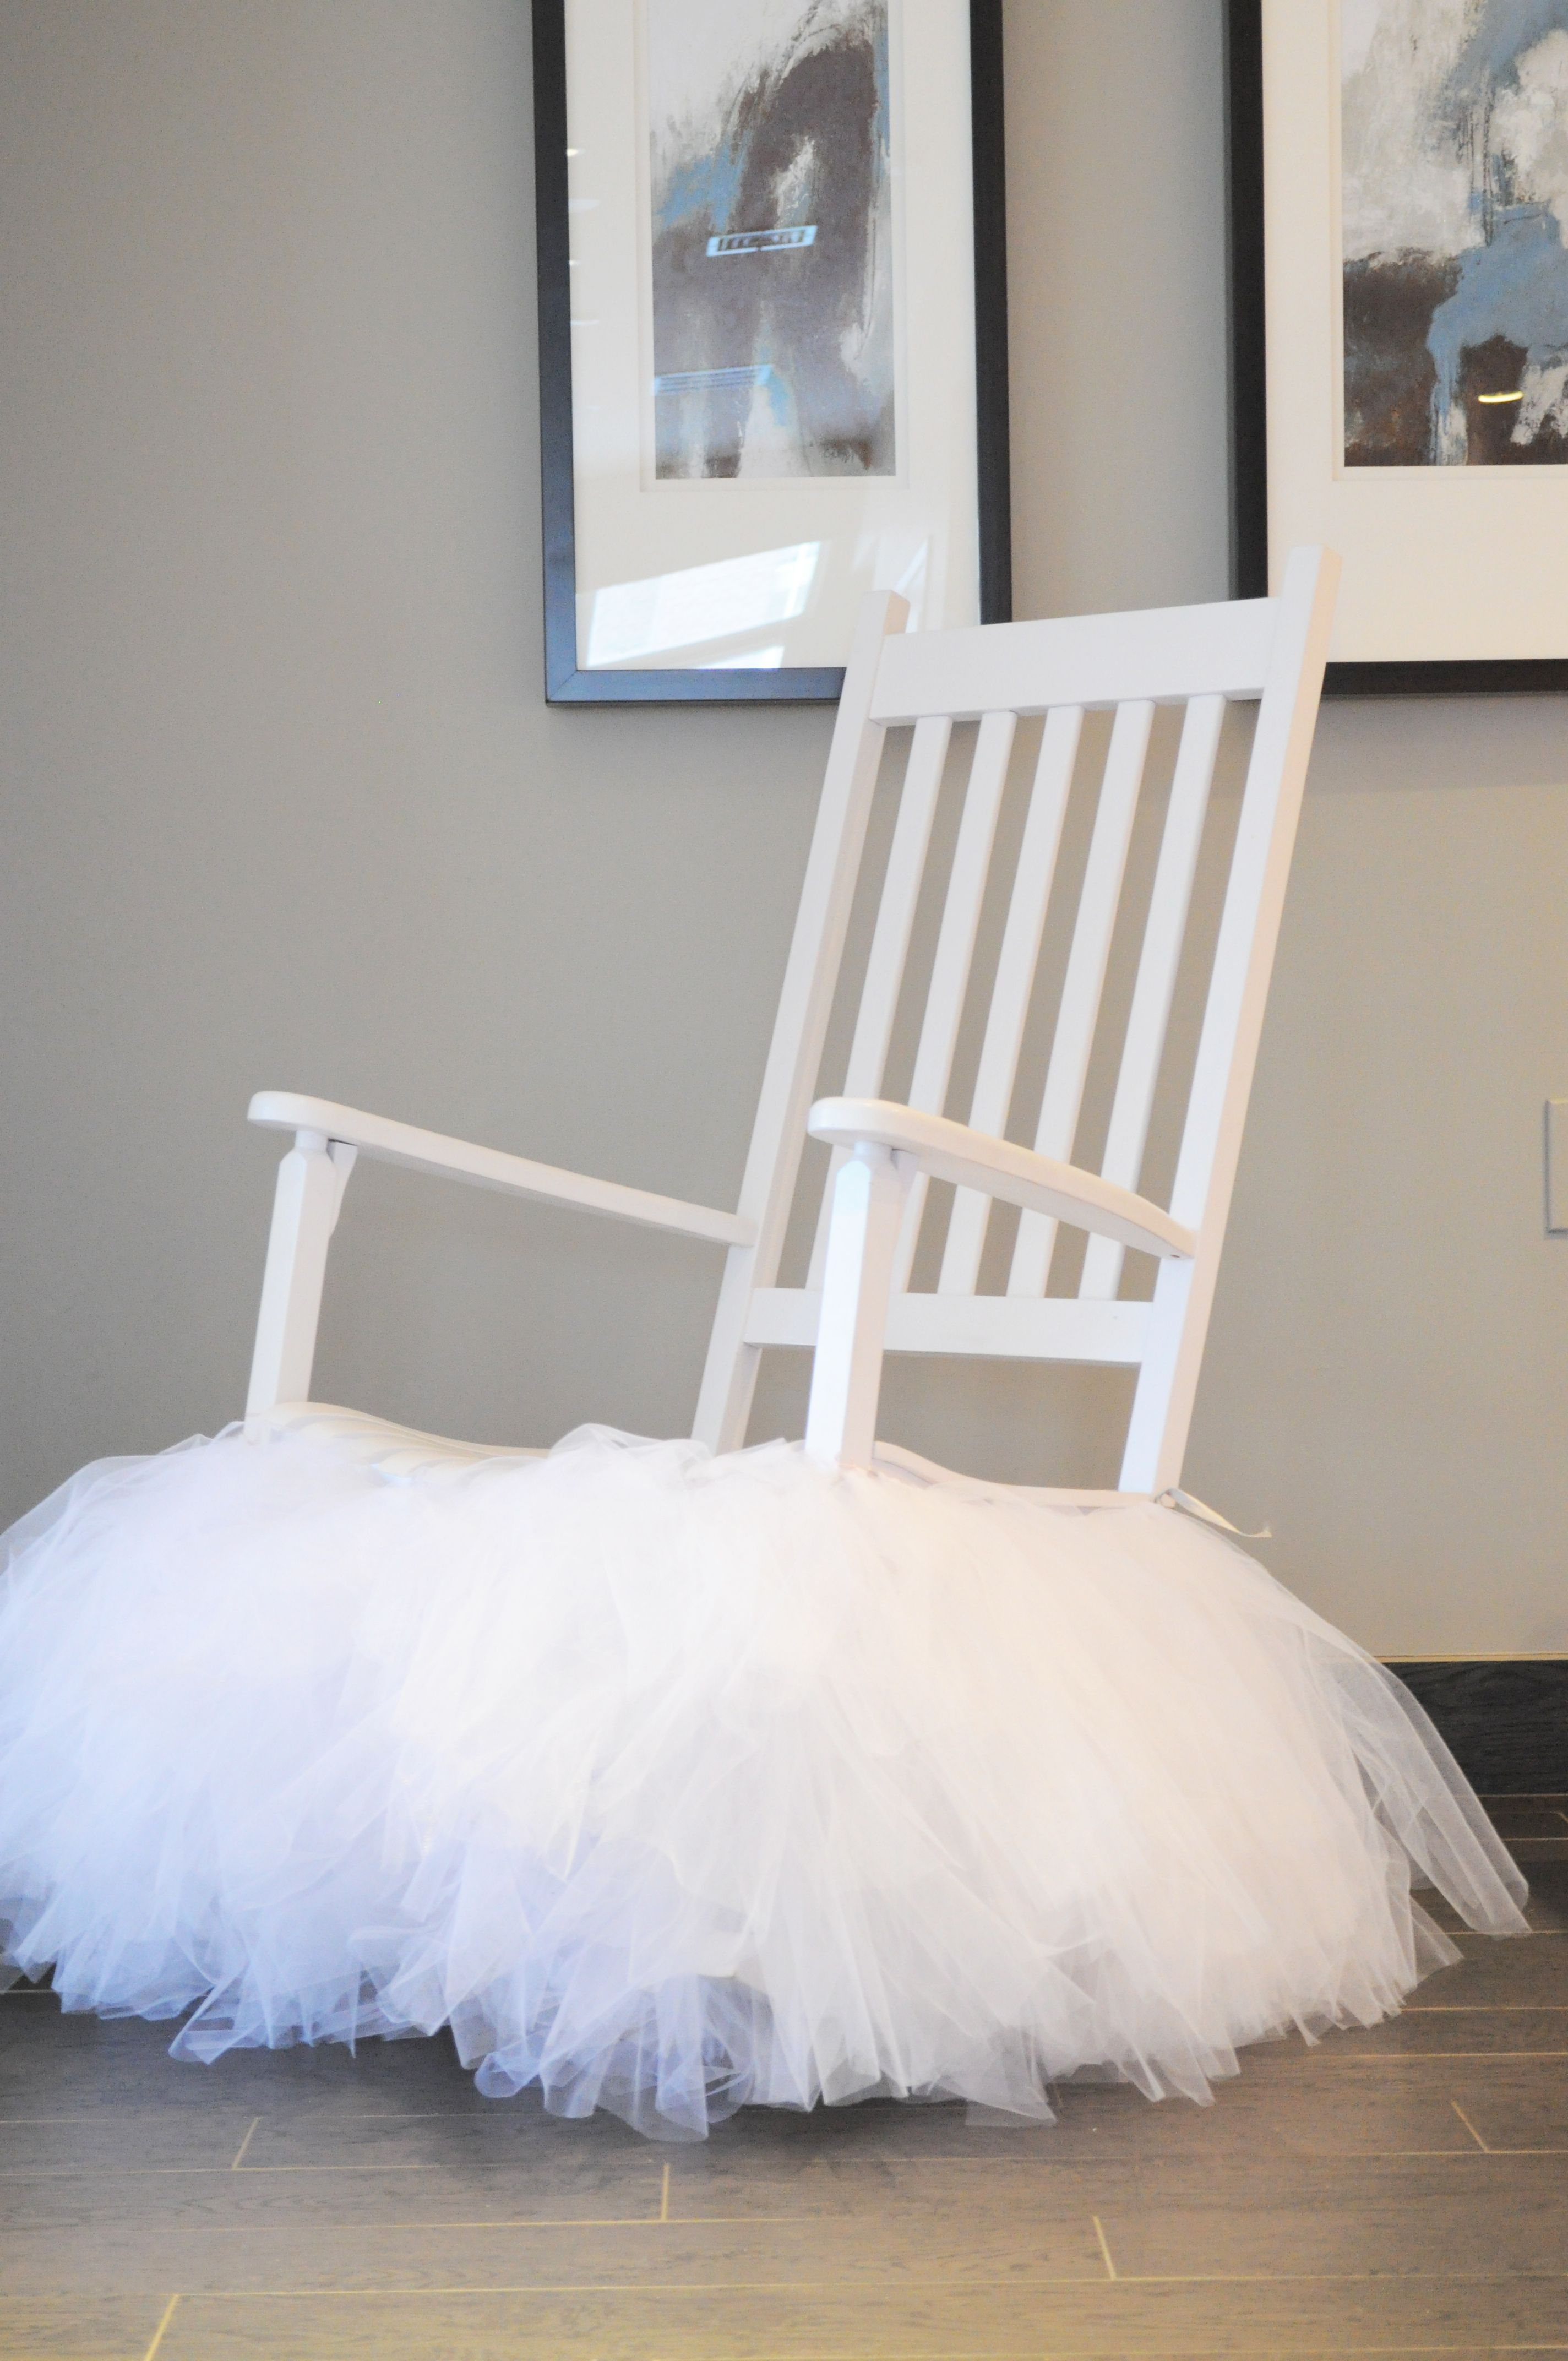 baby shower chairs for rent recliner chair protectors australia mommy to be custom made this tutu